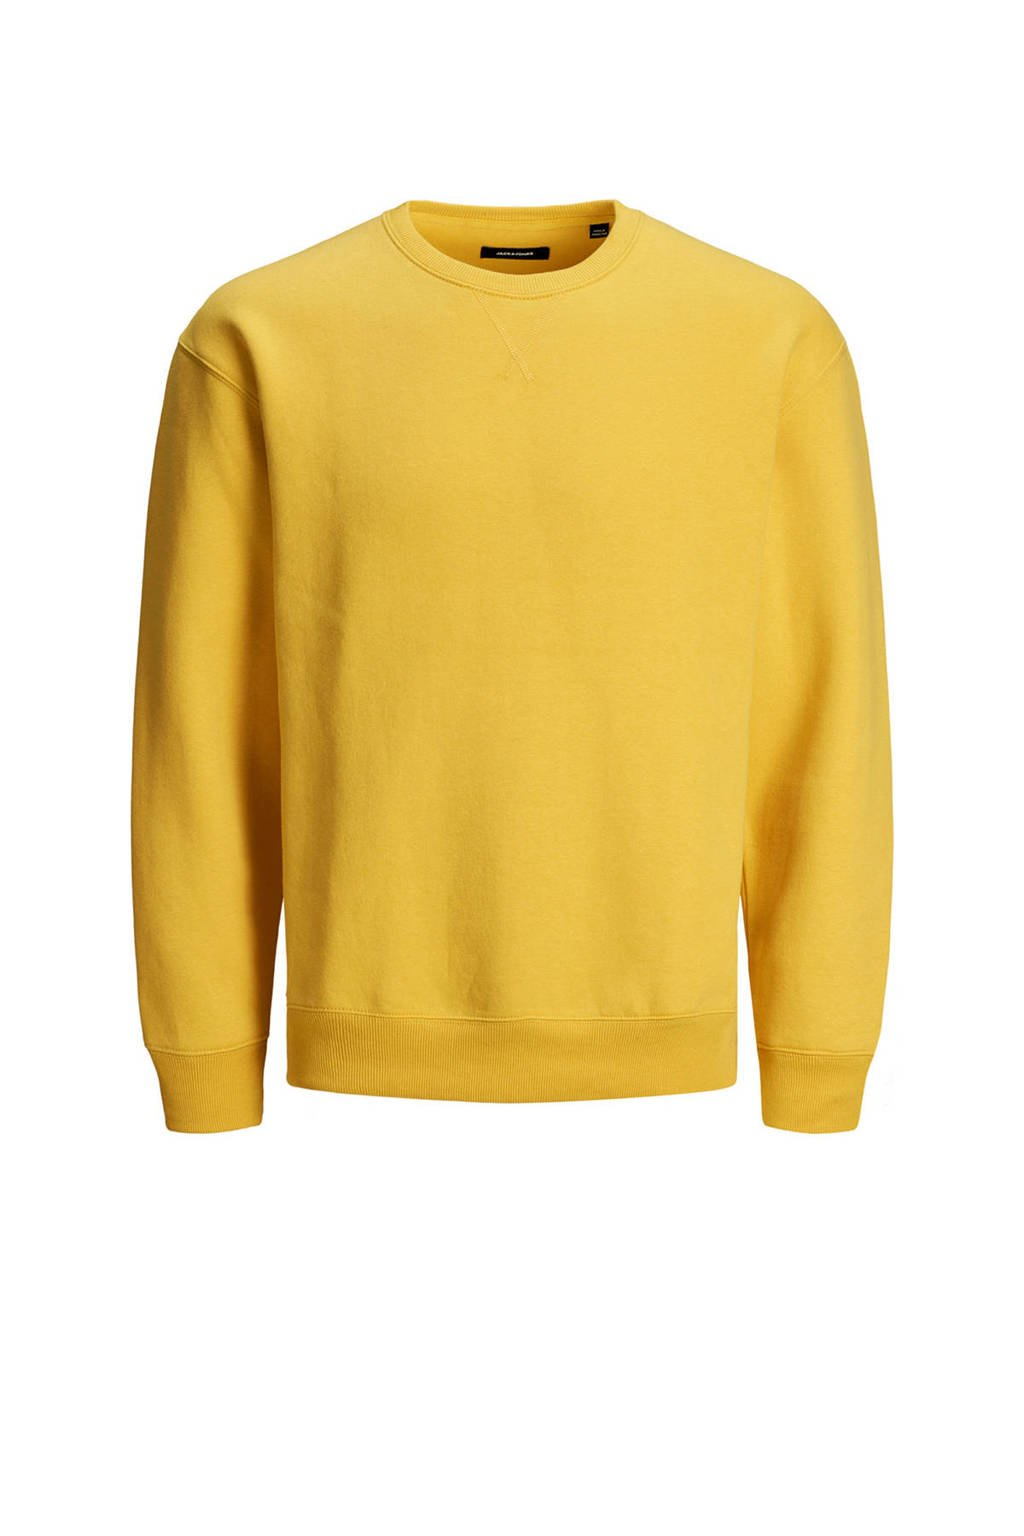 JACK & JONES JUNIOR sweater Soft geel, Geel